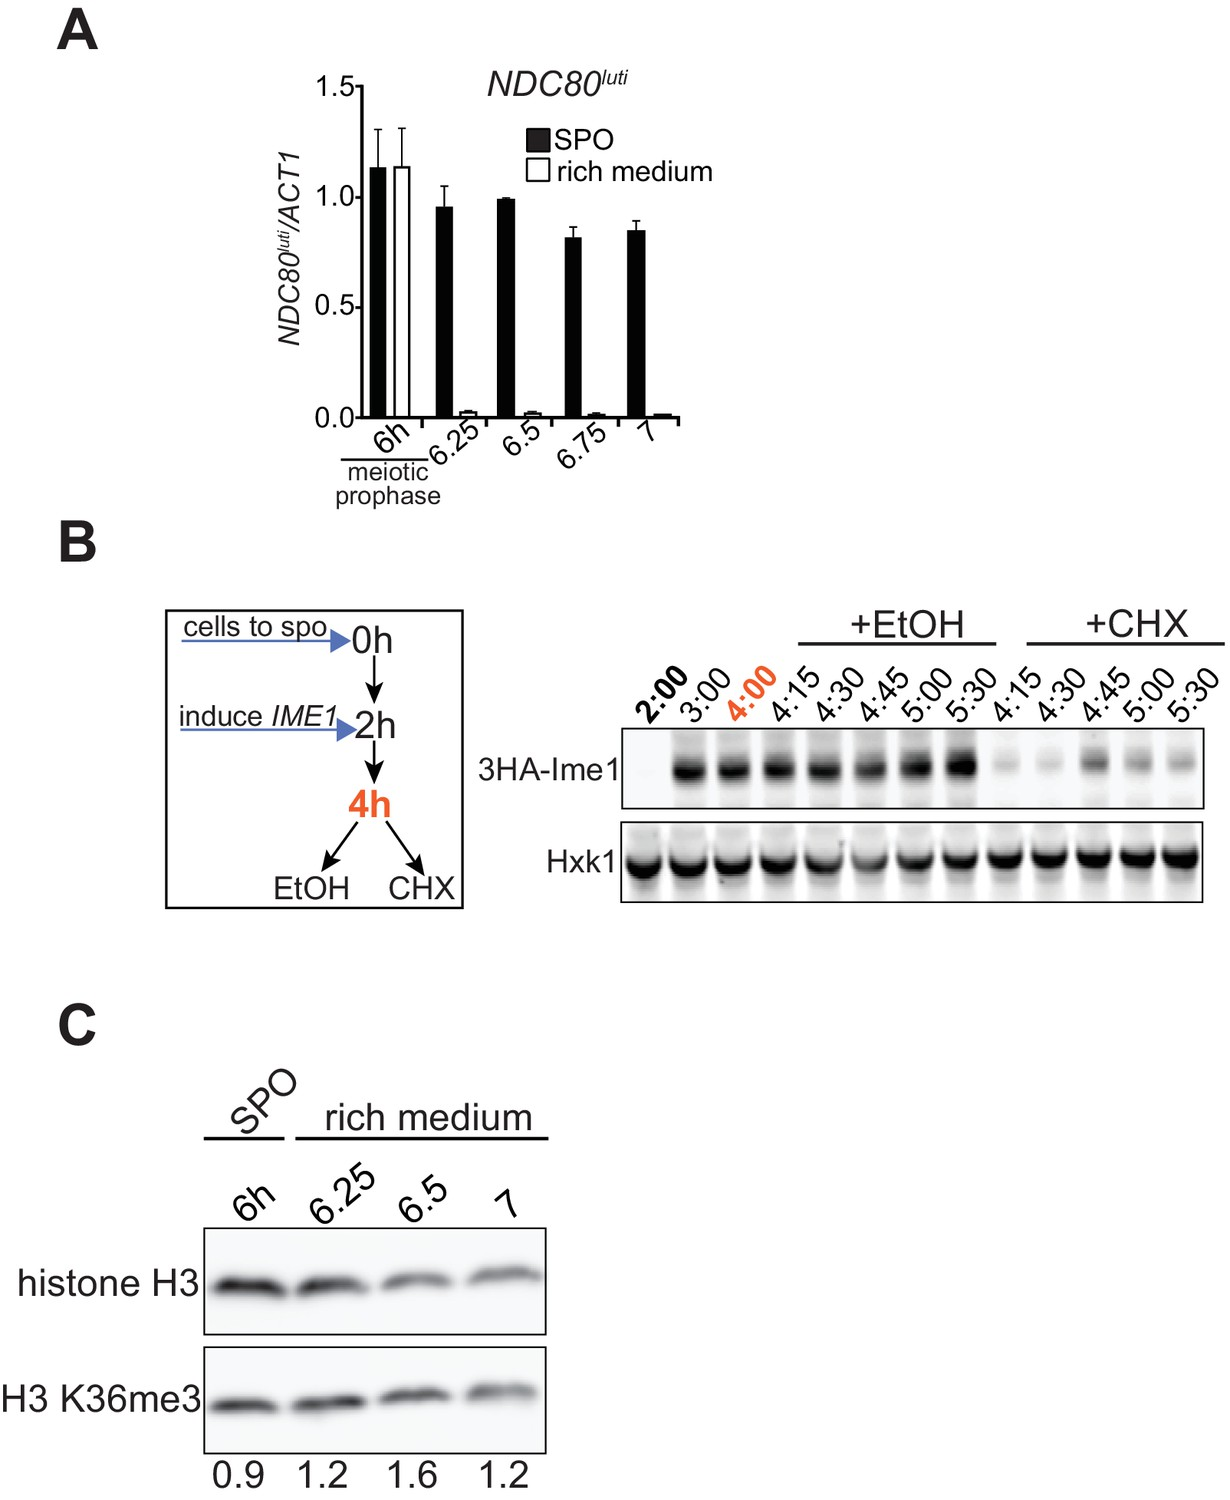 Transcription Of A 5 Extended Mrna Isoform Directs Dynamic Process Flow Diagram Nylon 6 Ndc80luti Mediated Repression Is Reversible